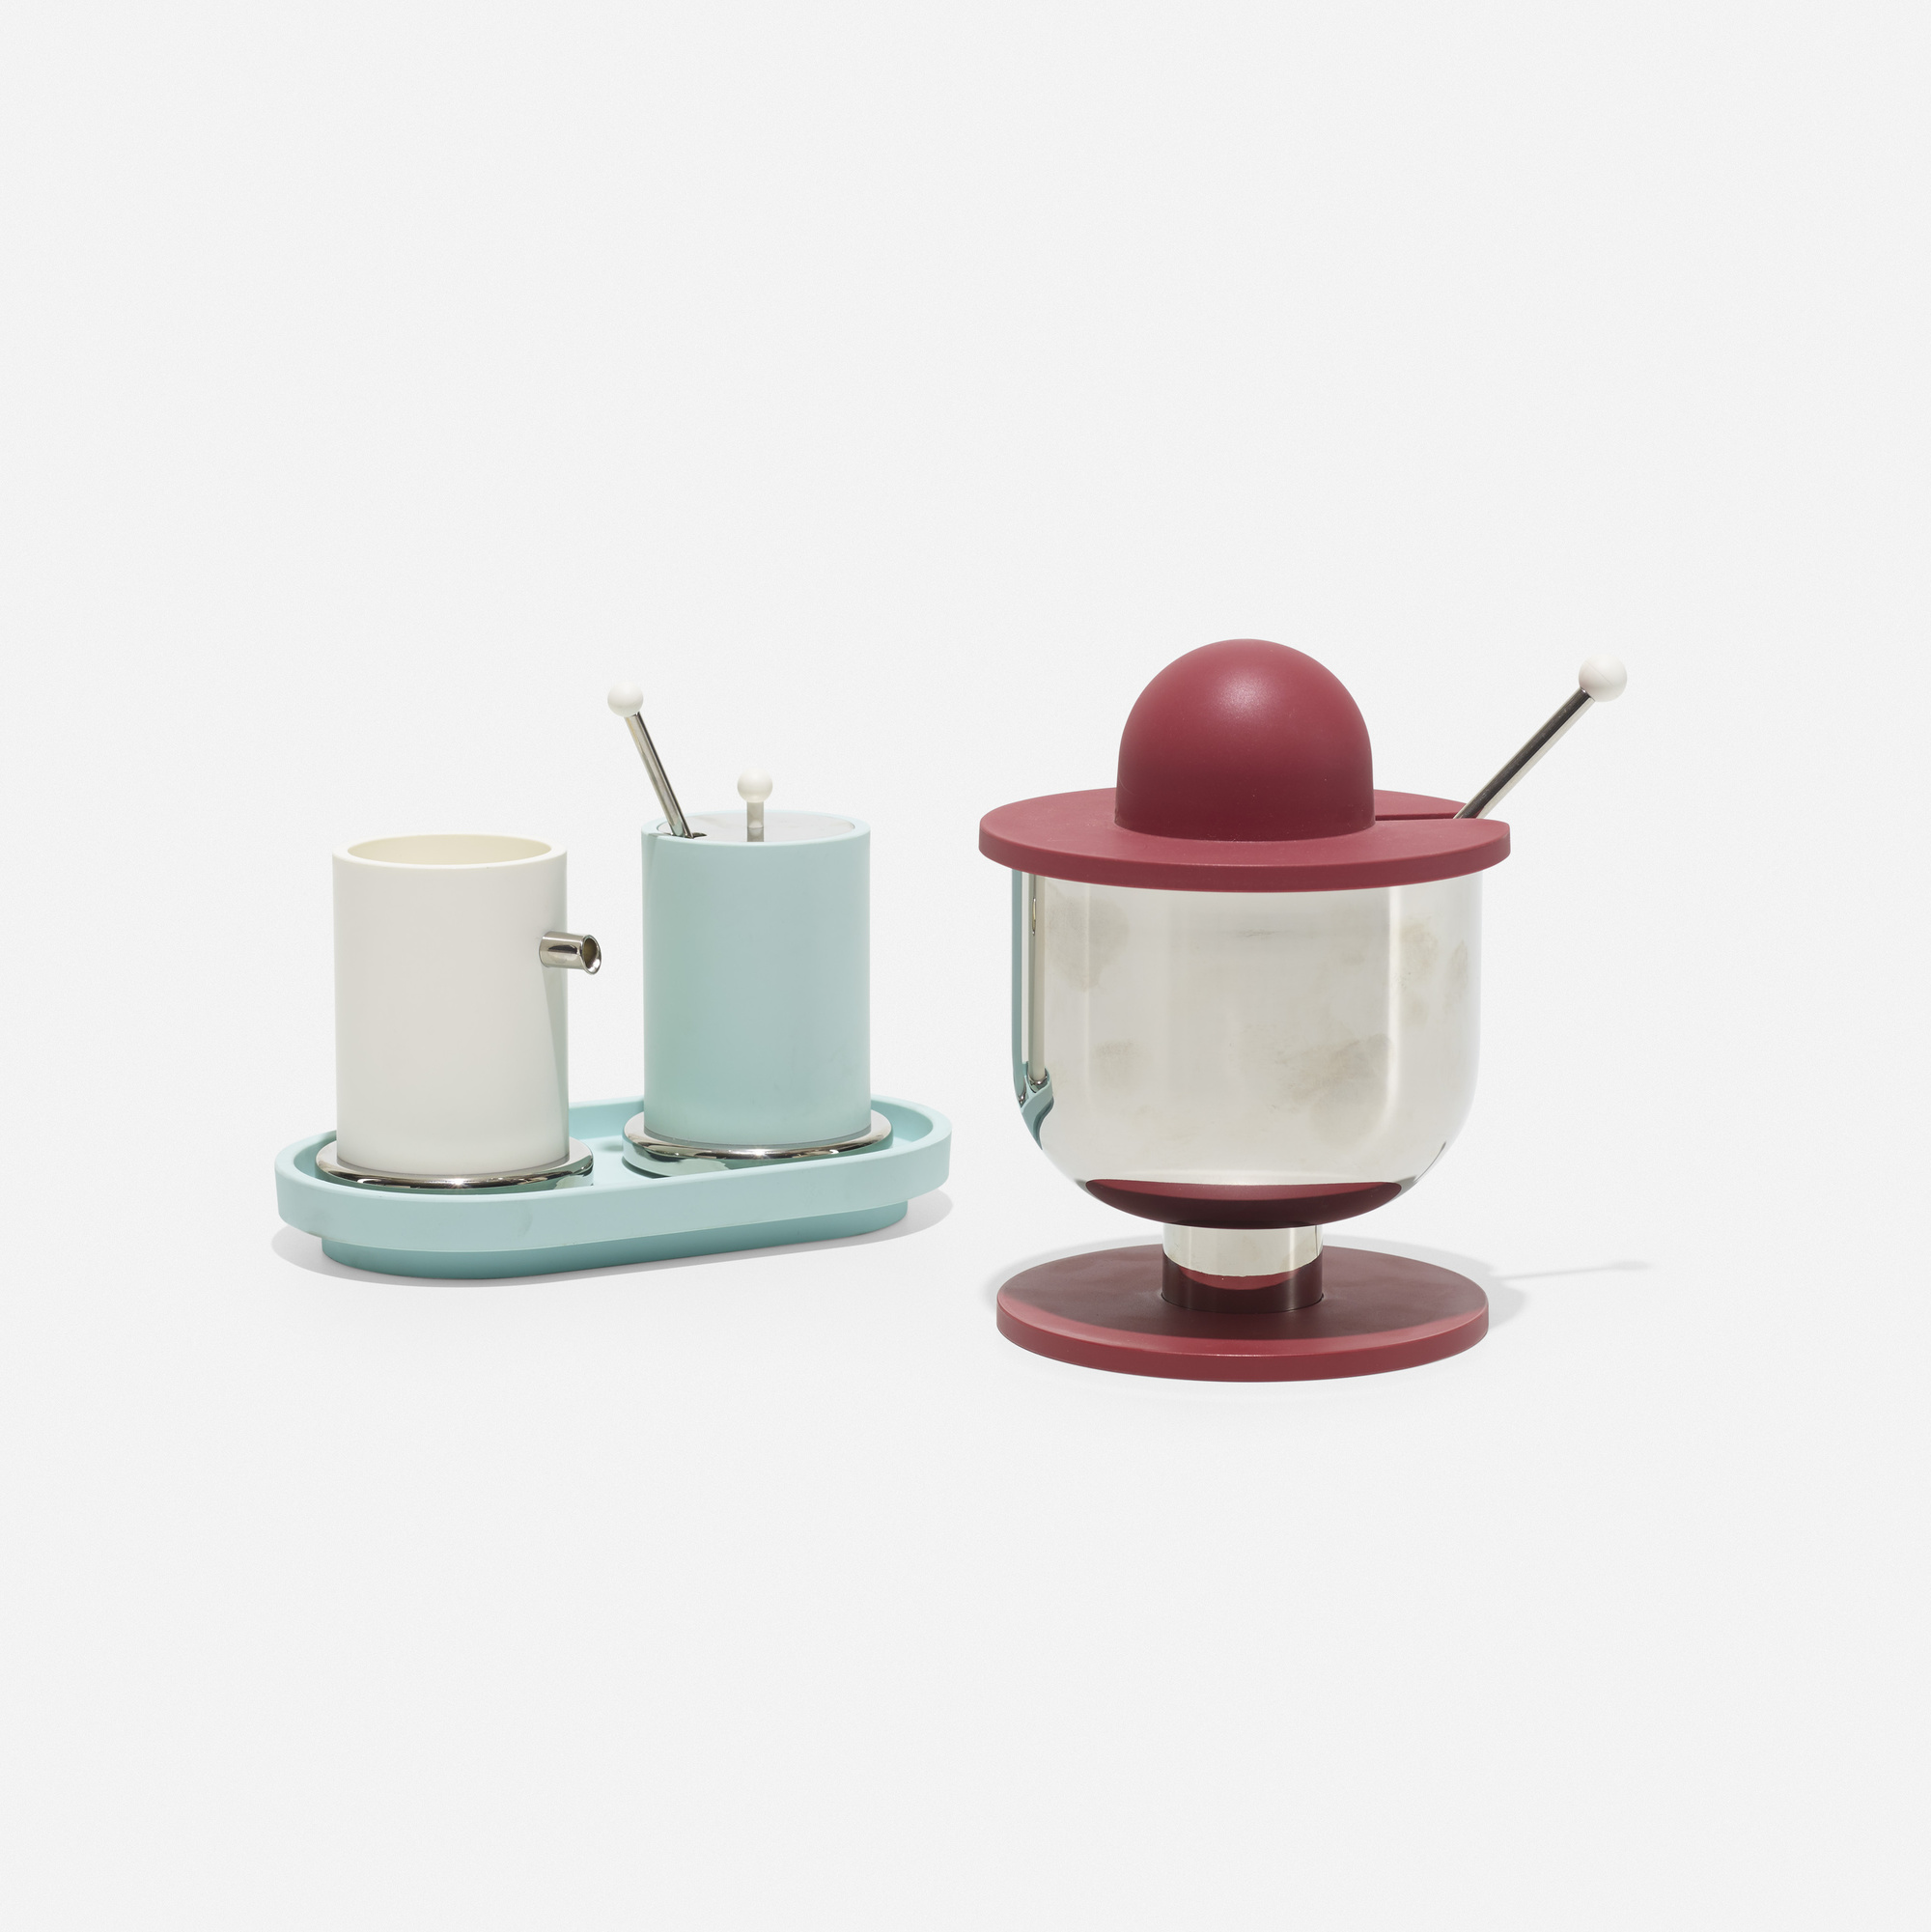 181: Ettore Sottsass / cream and sugar service (1 of 1)